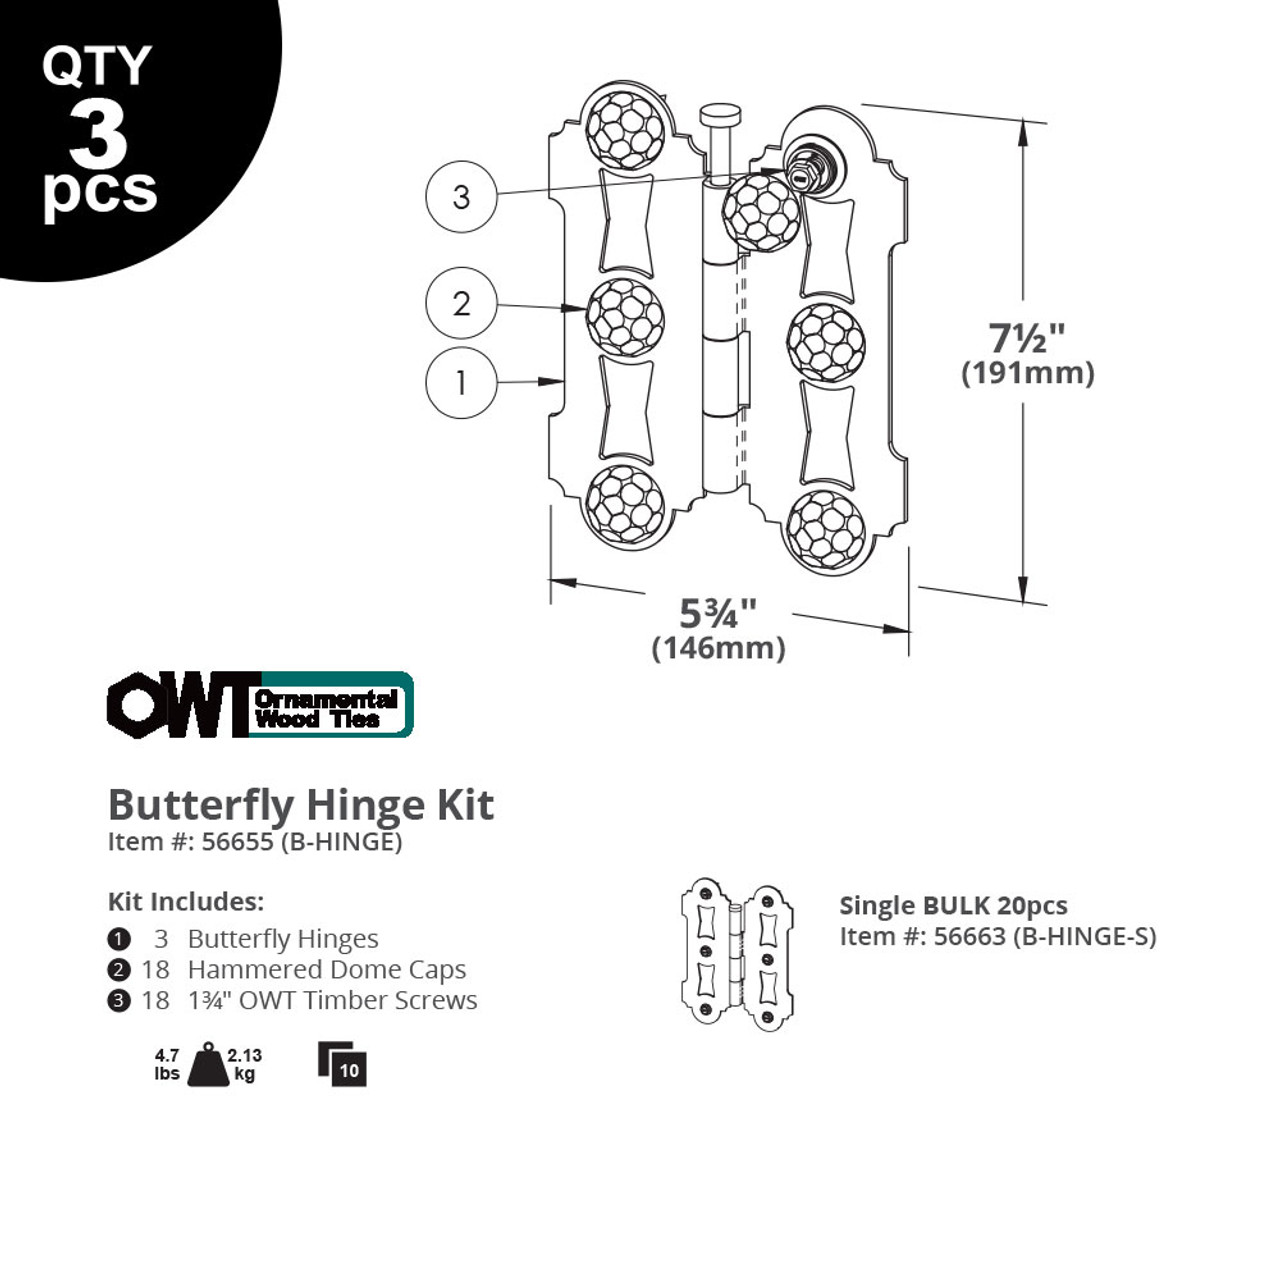 OZCO OWT Butterfly Hinge Drawing & Specifications